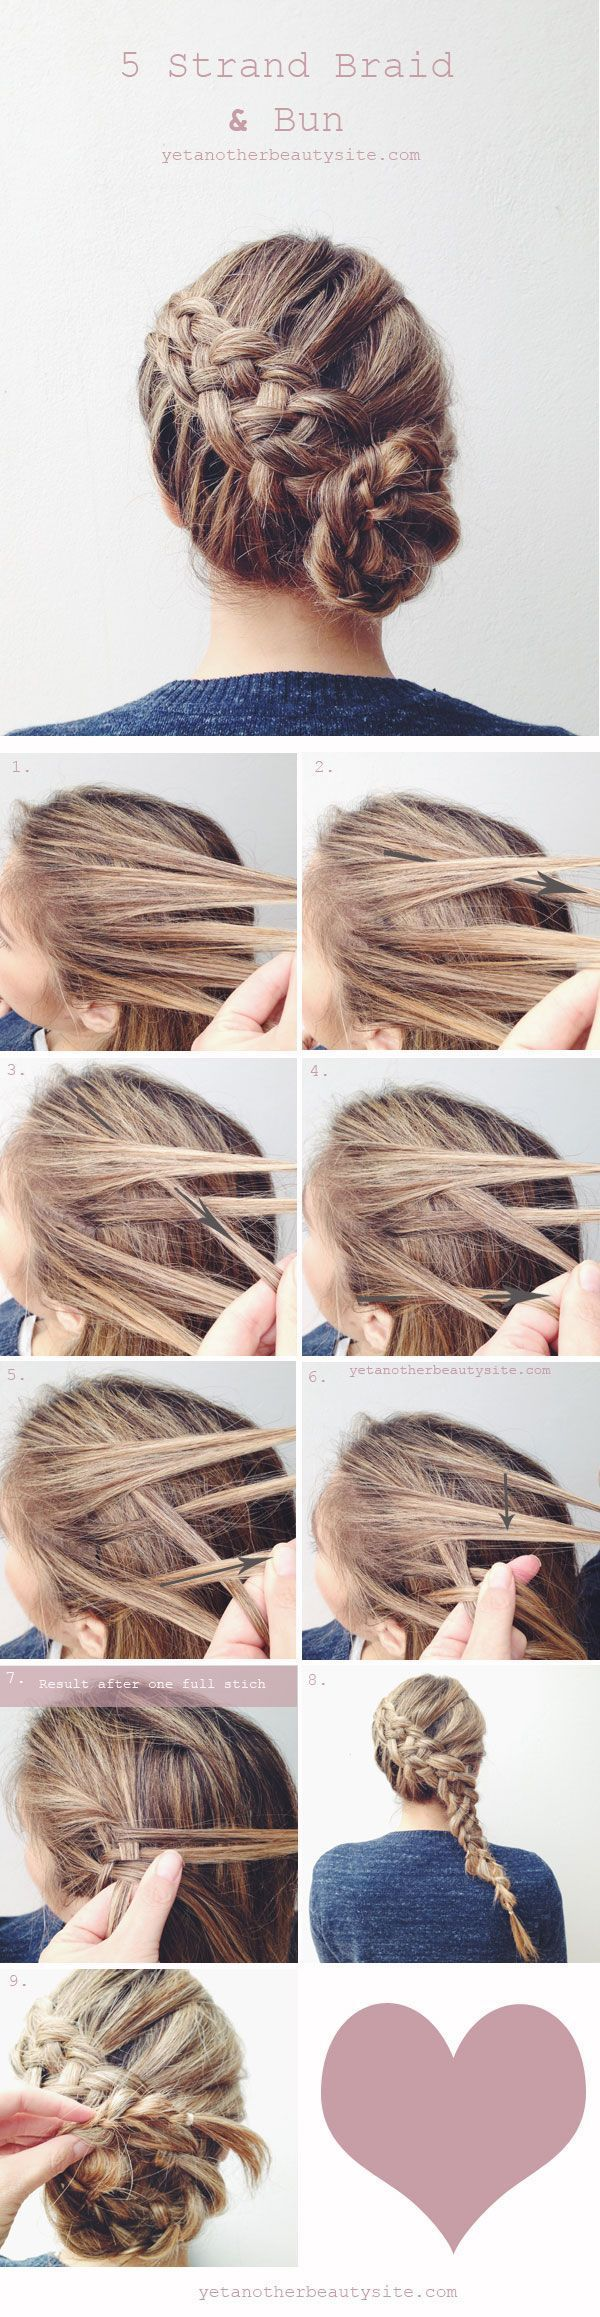 best 25+ cute hairstyles ideas on pinterest | super cute